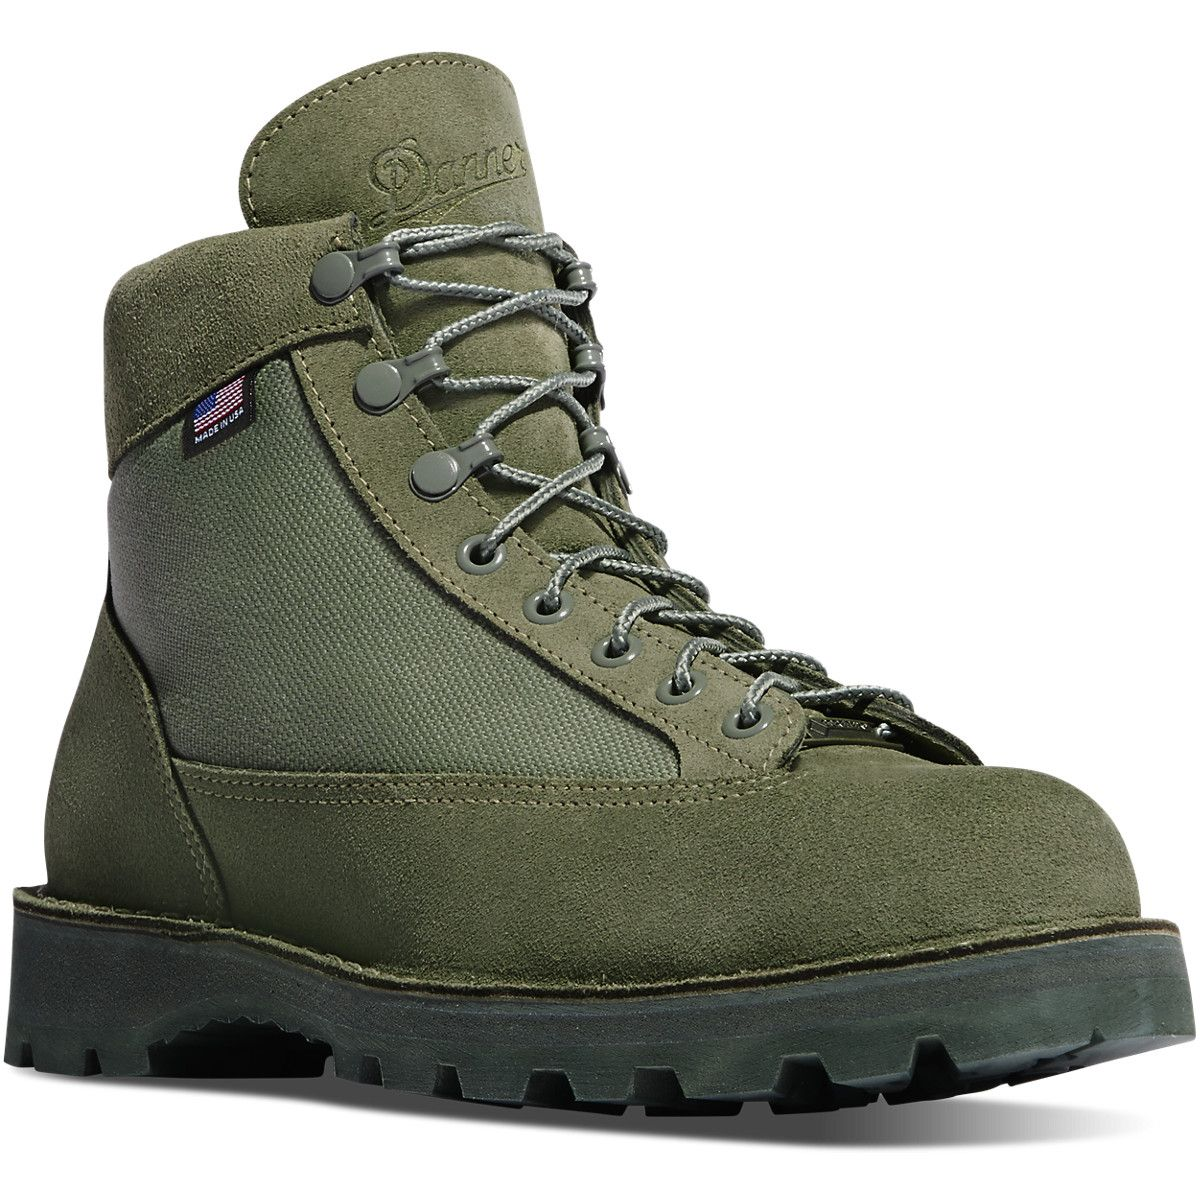 Danner - Danner Light Sage | bőr termékek | Pinterest | Lights